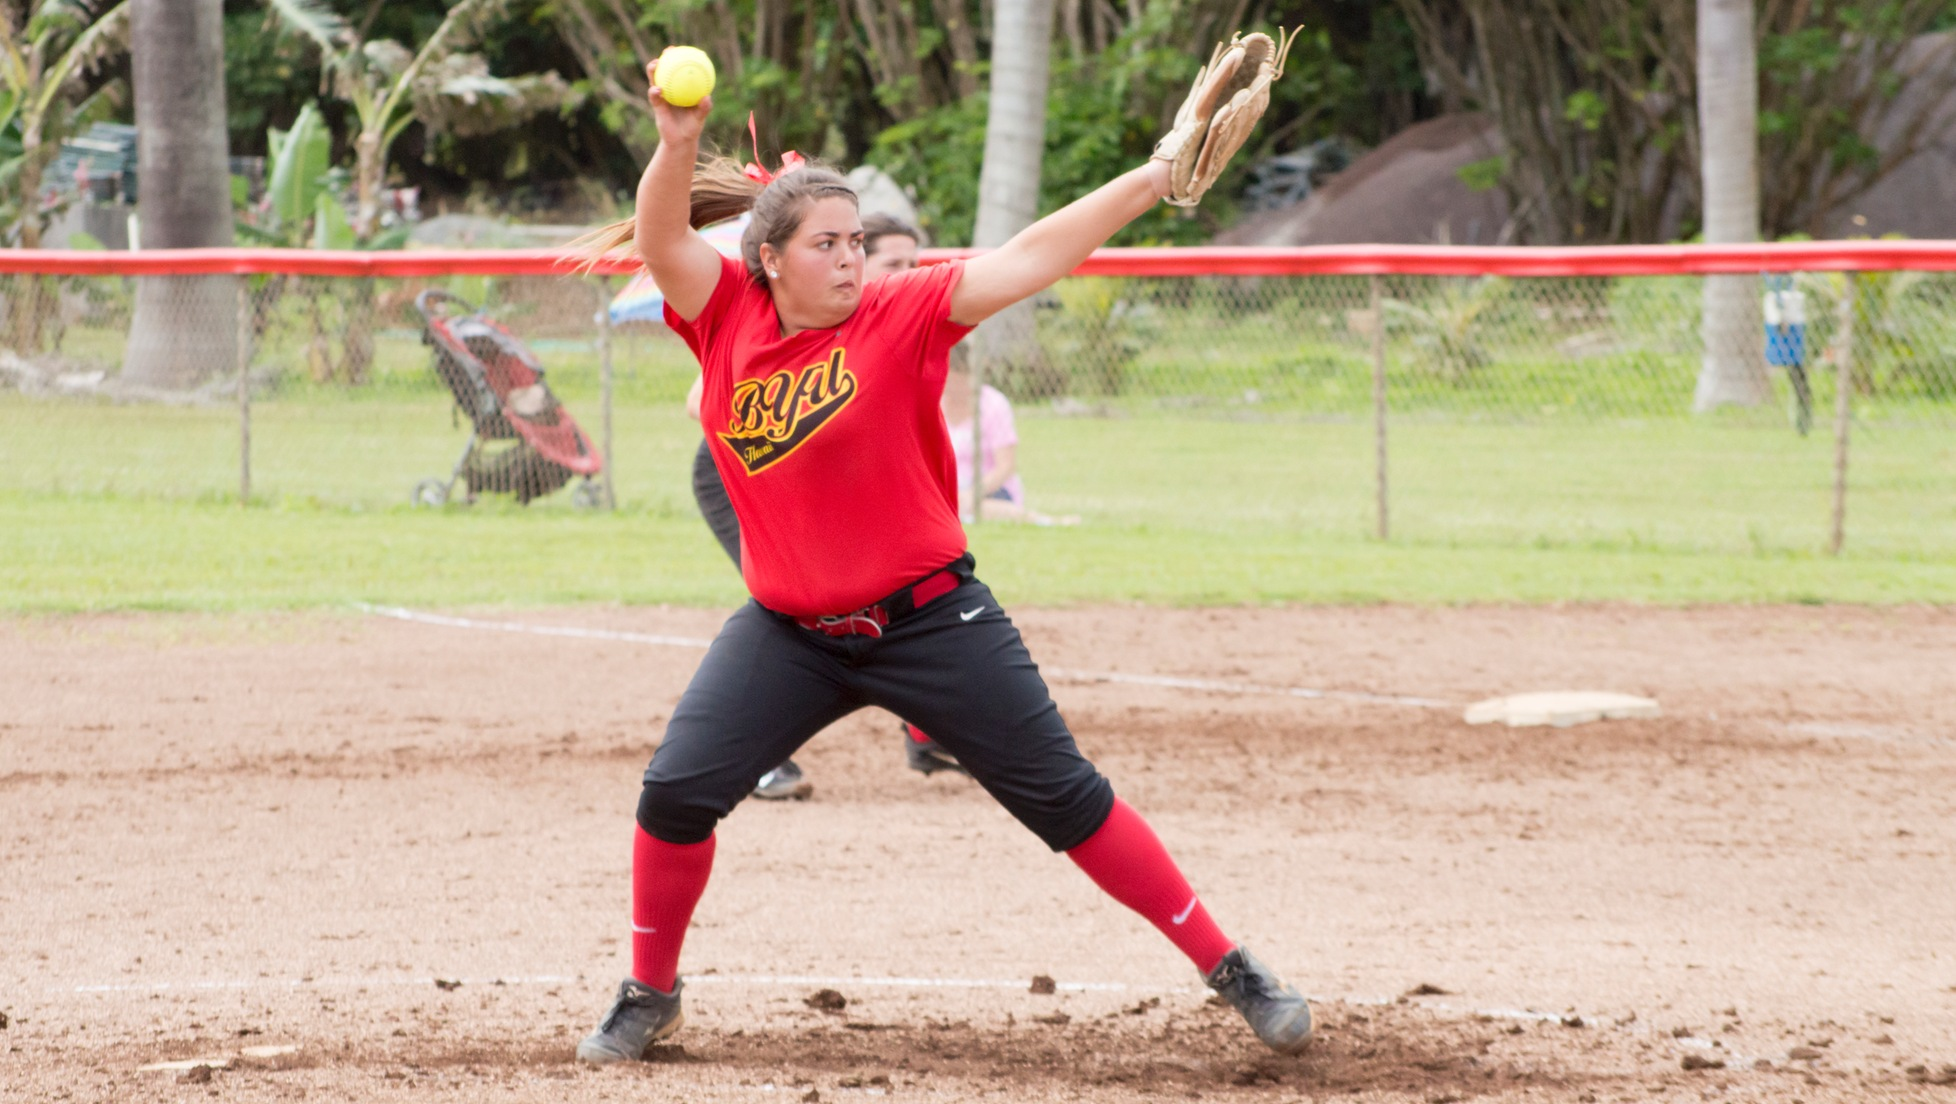 Taiana Williamson allowed one earned run in her first victory as a Seasider.